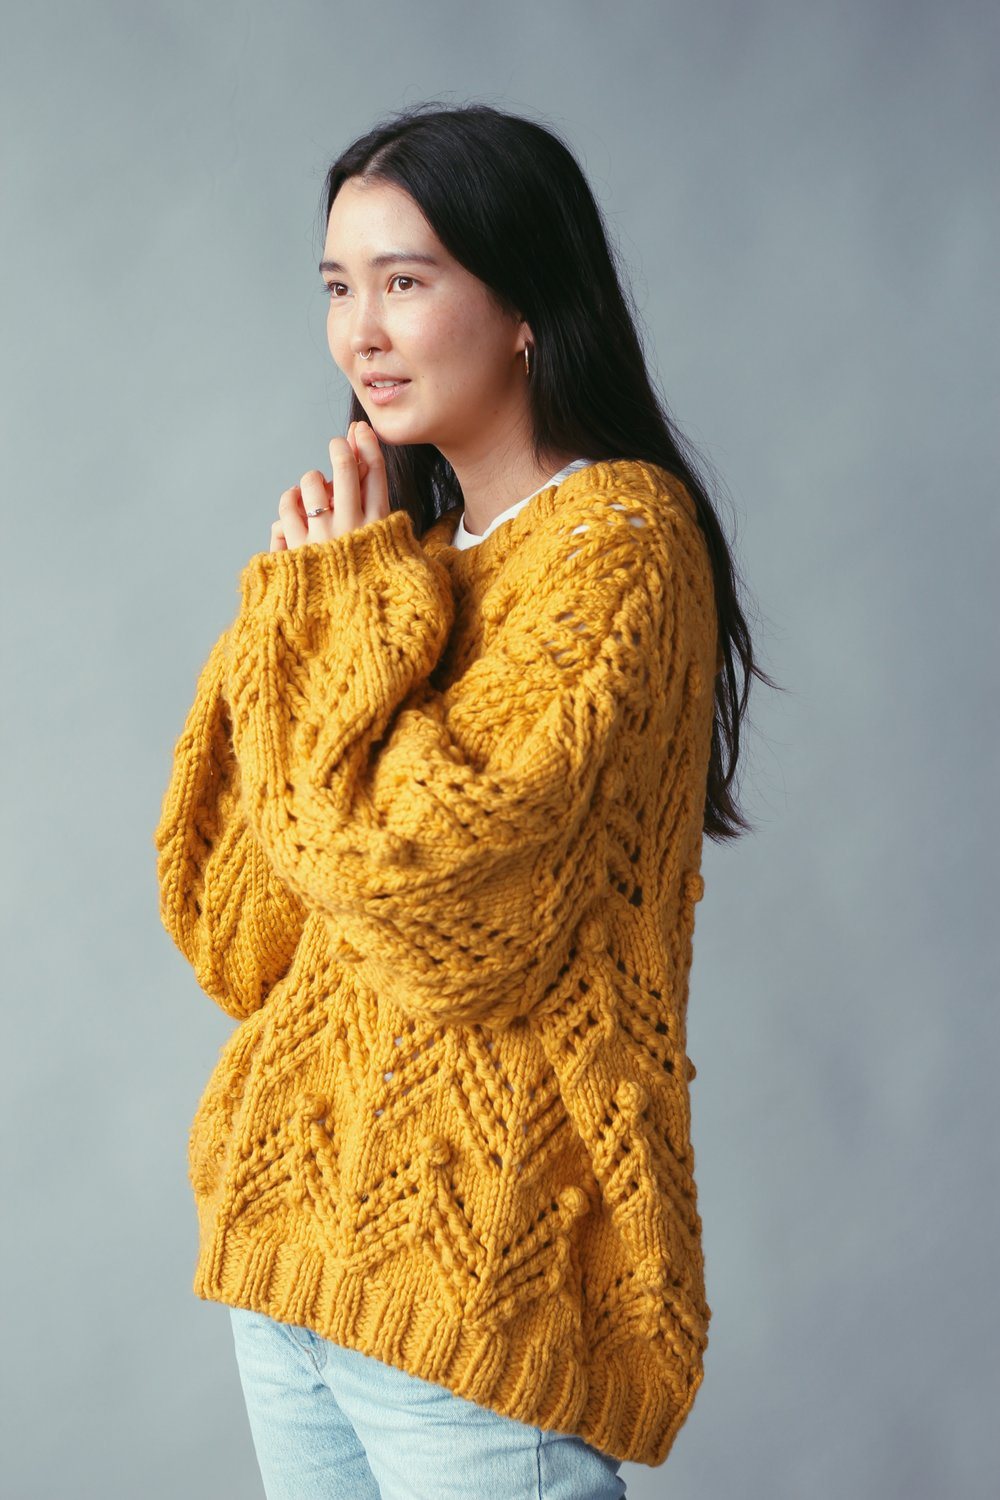 ADVANCED - This pattern is definitely a bit more difficult but perfect for anyone who wants to challenge themselves or were waiting for the right project to start knitting lace patterns. This Jumper is very big - I made mine in size L-XL since I am tall and love oversized jumpers.